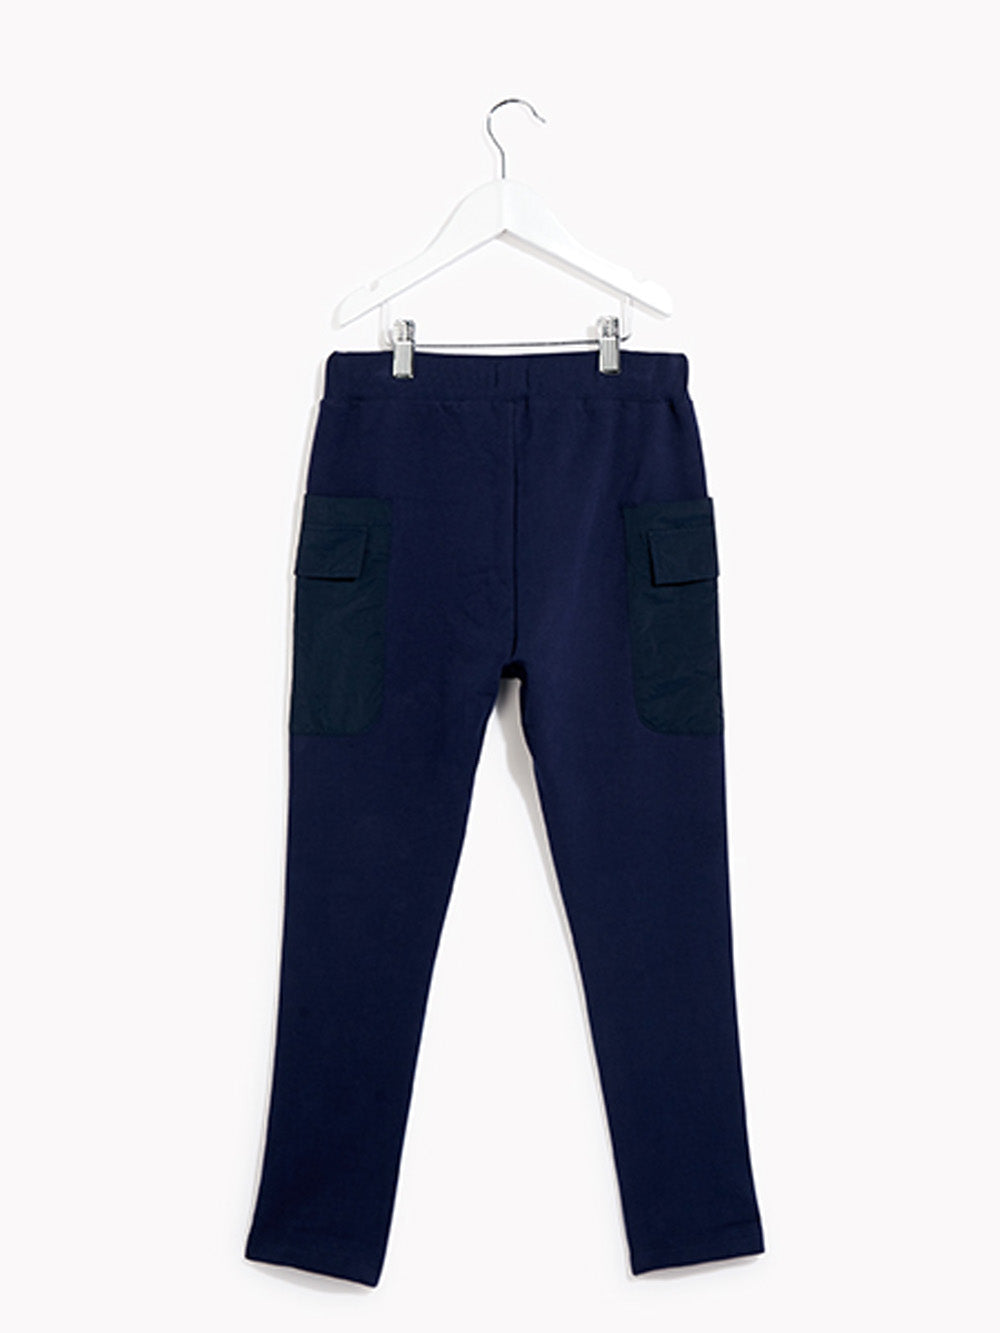 Boys Joggers Tracksuit Bottoms - Campus Navy Sweat Trouser